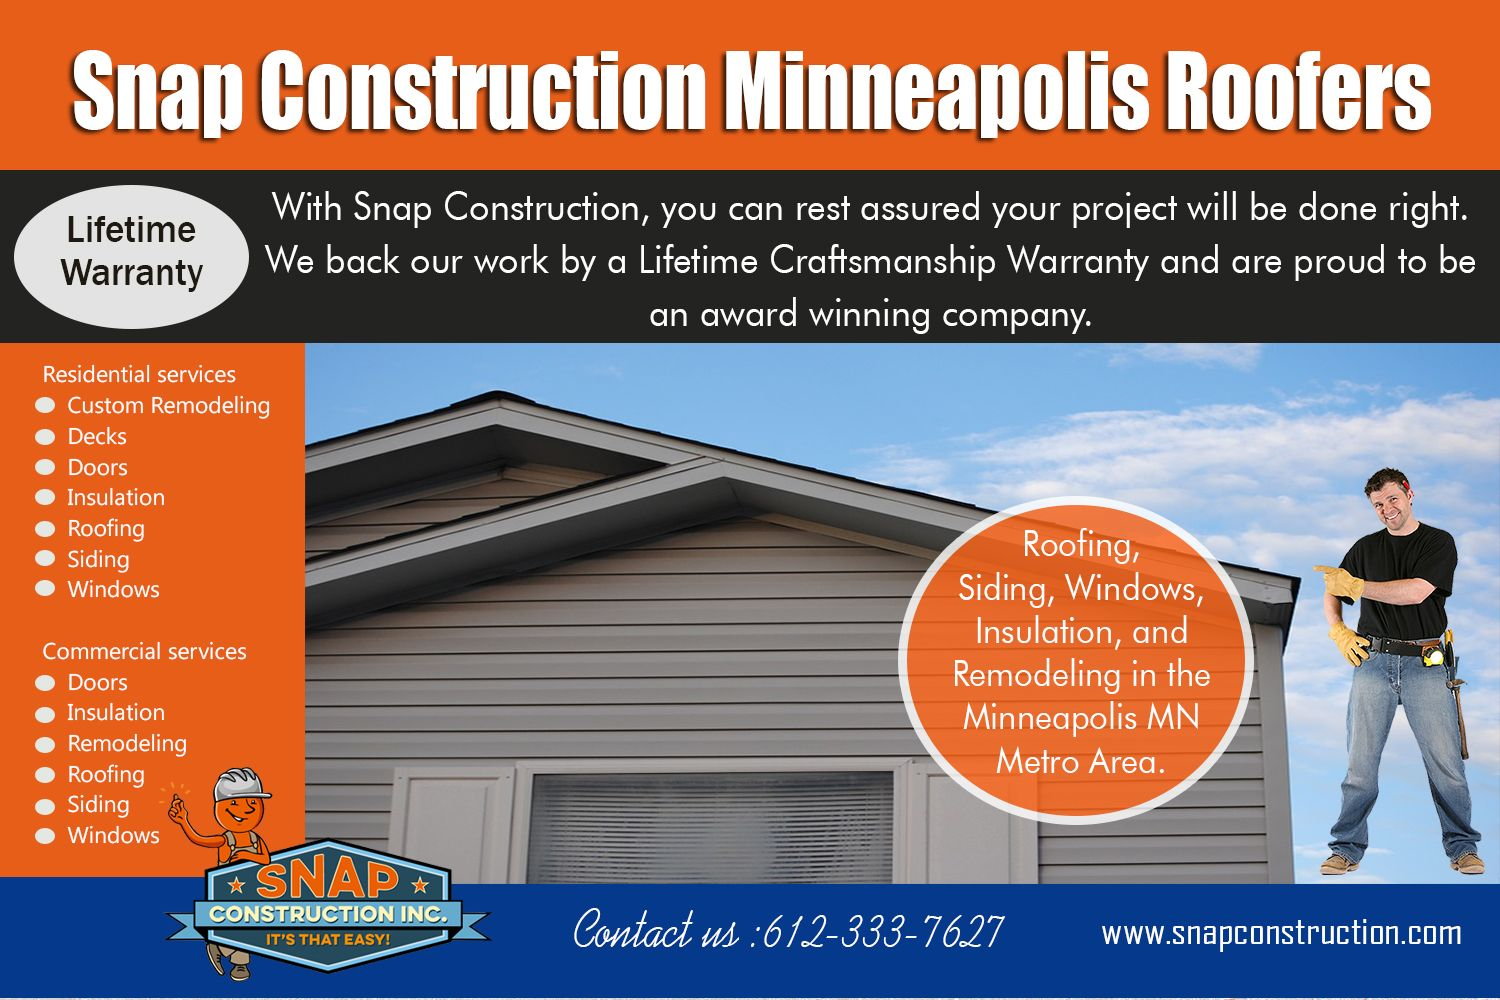 Roofing Company Minneapolis Mn With Images Roofing Companies Roofing Roofing Contractors